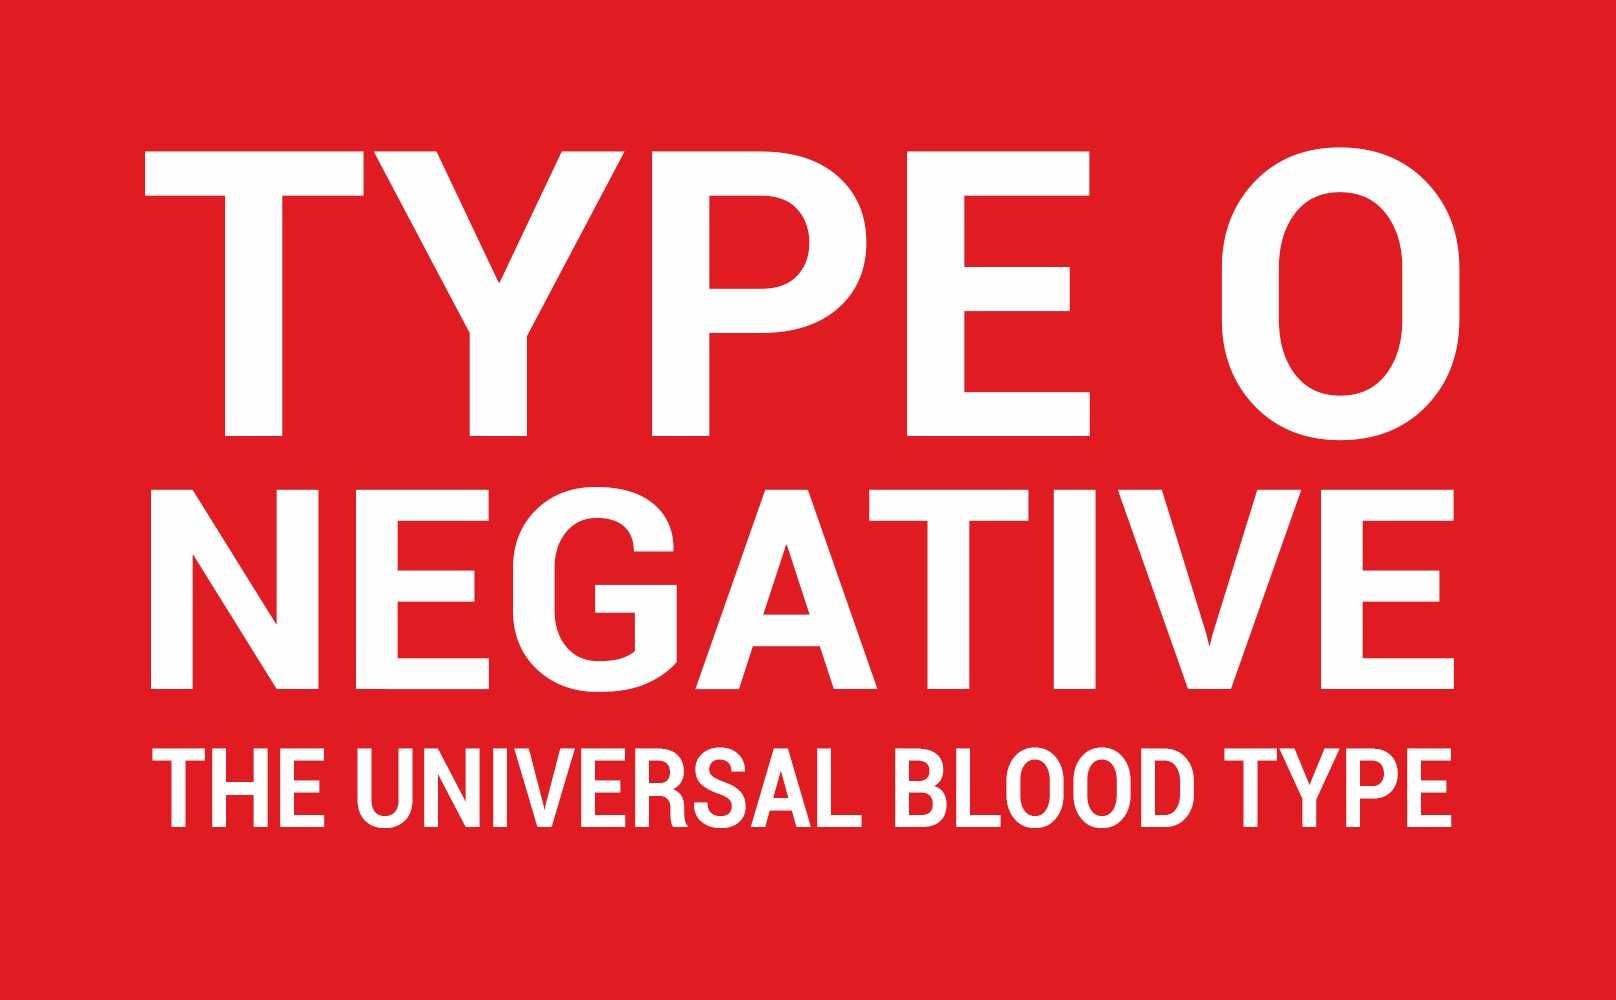 Have Type O Blood? - Donate in Coffeyville This Week